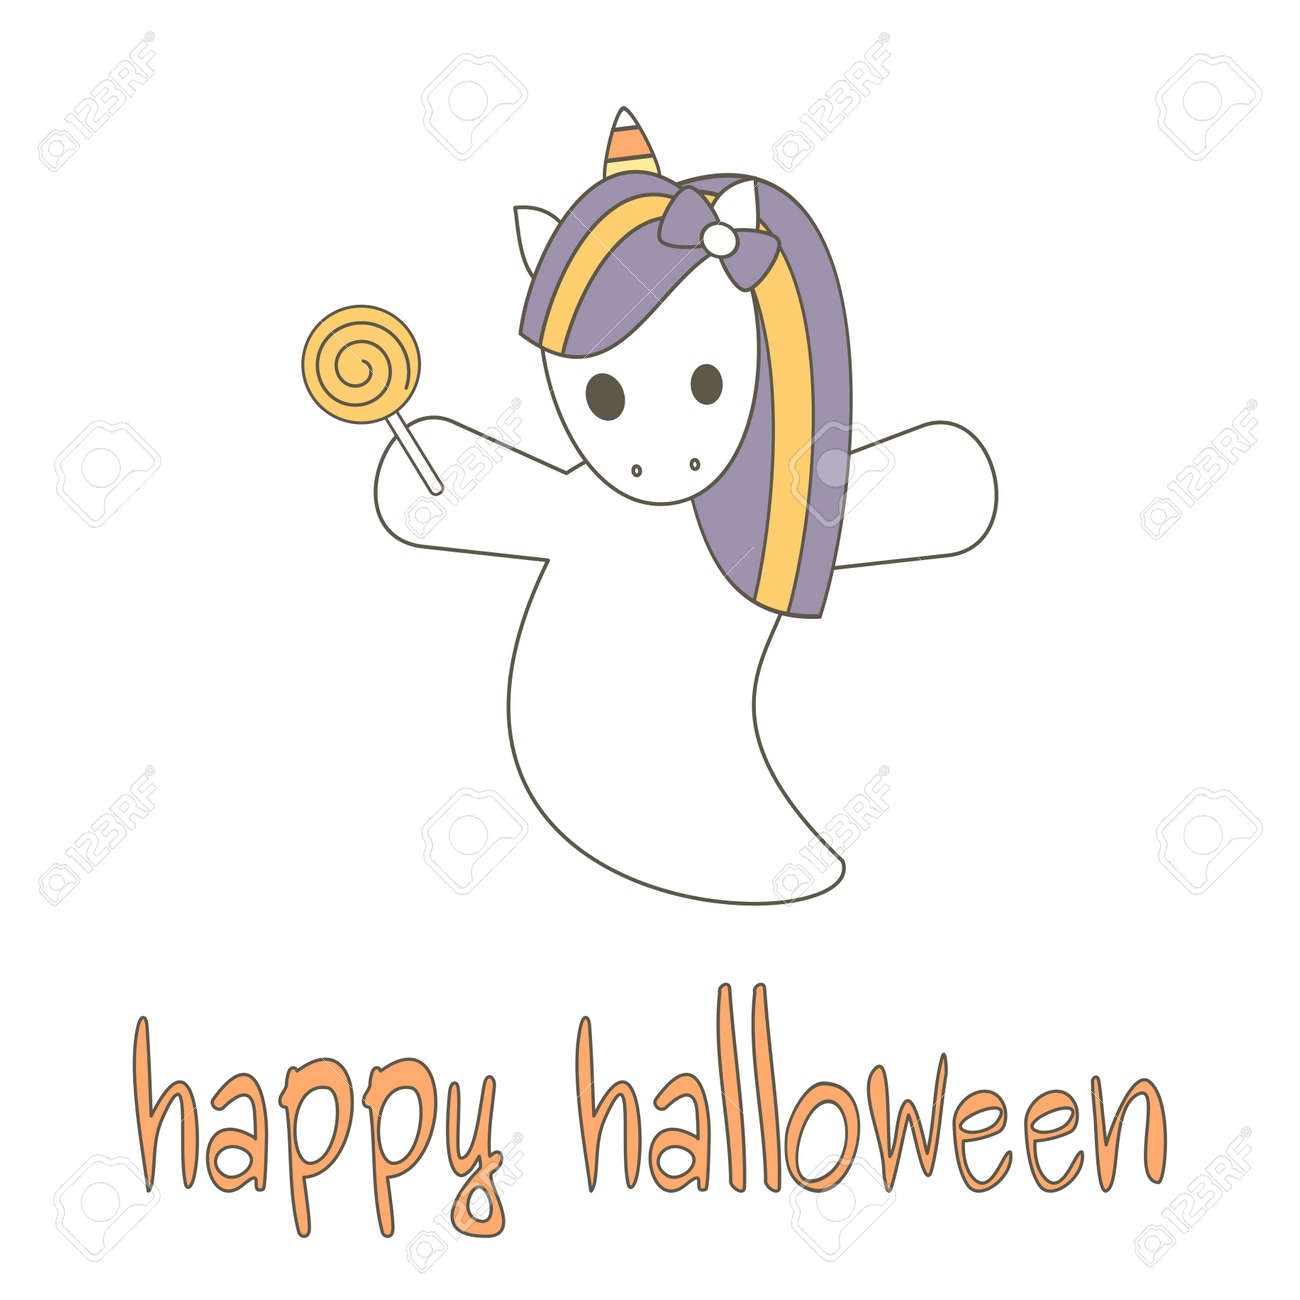 Cute Hand Drawn Happy Halloween Lettering Vector Card With Unicorn